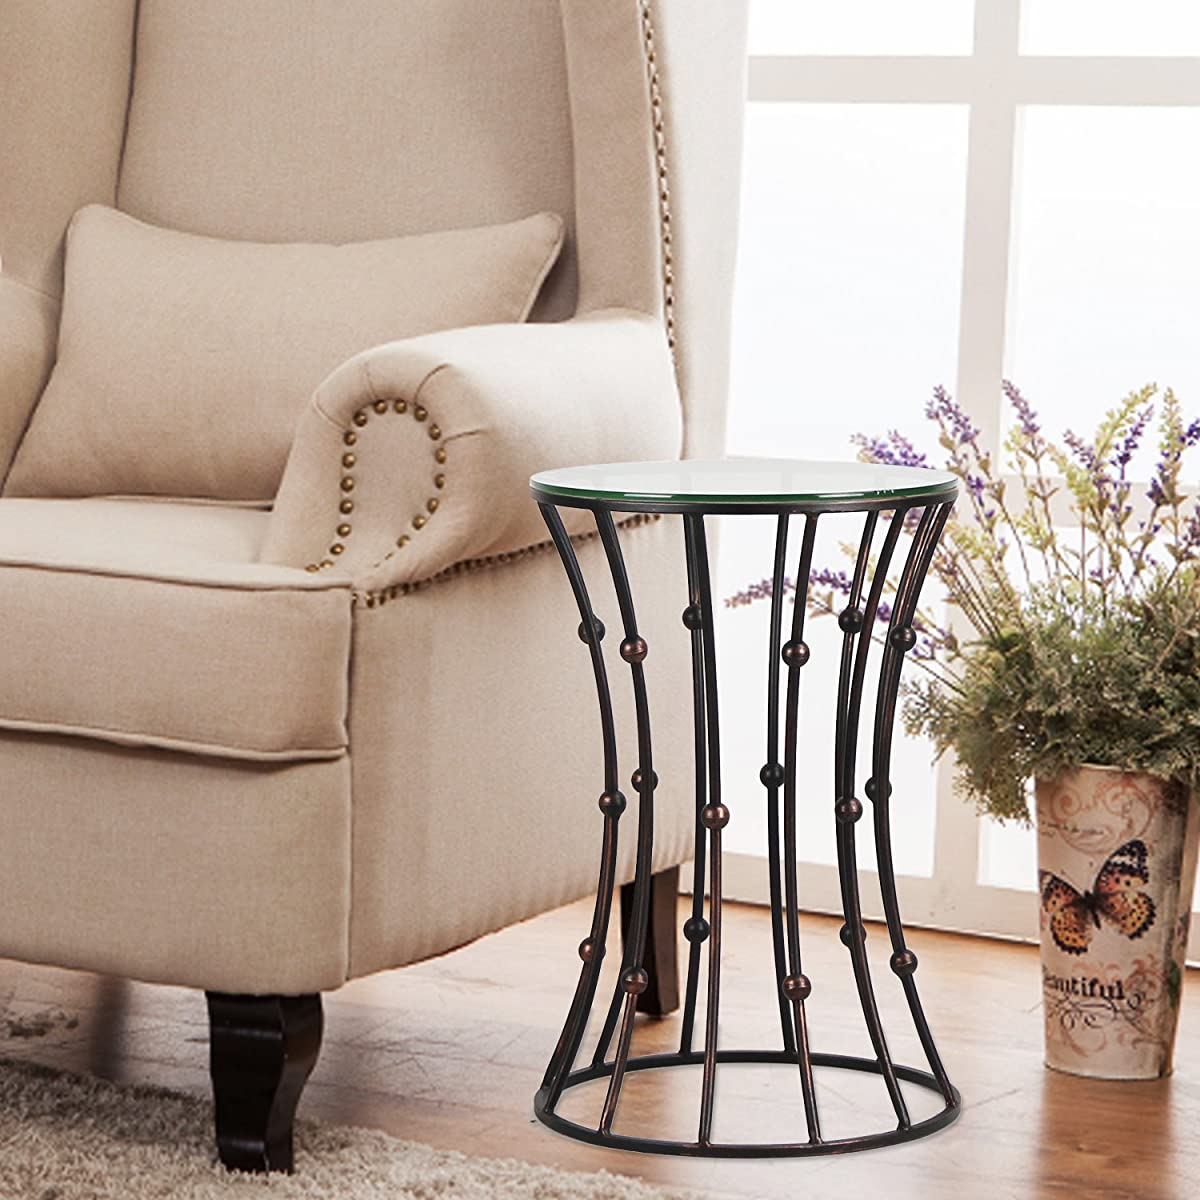 Joveco Brownish Black Accent Metal Curve Shaped Round End Table with Glass Top